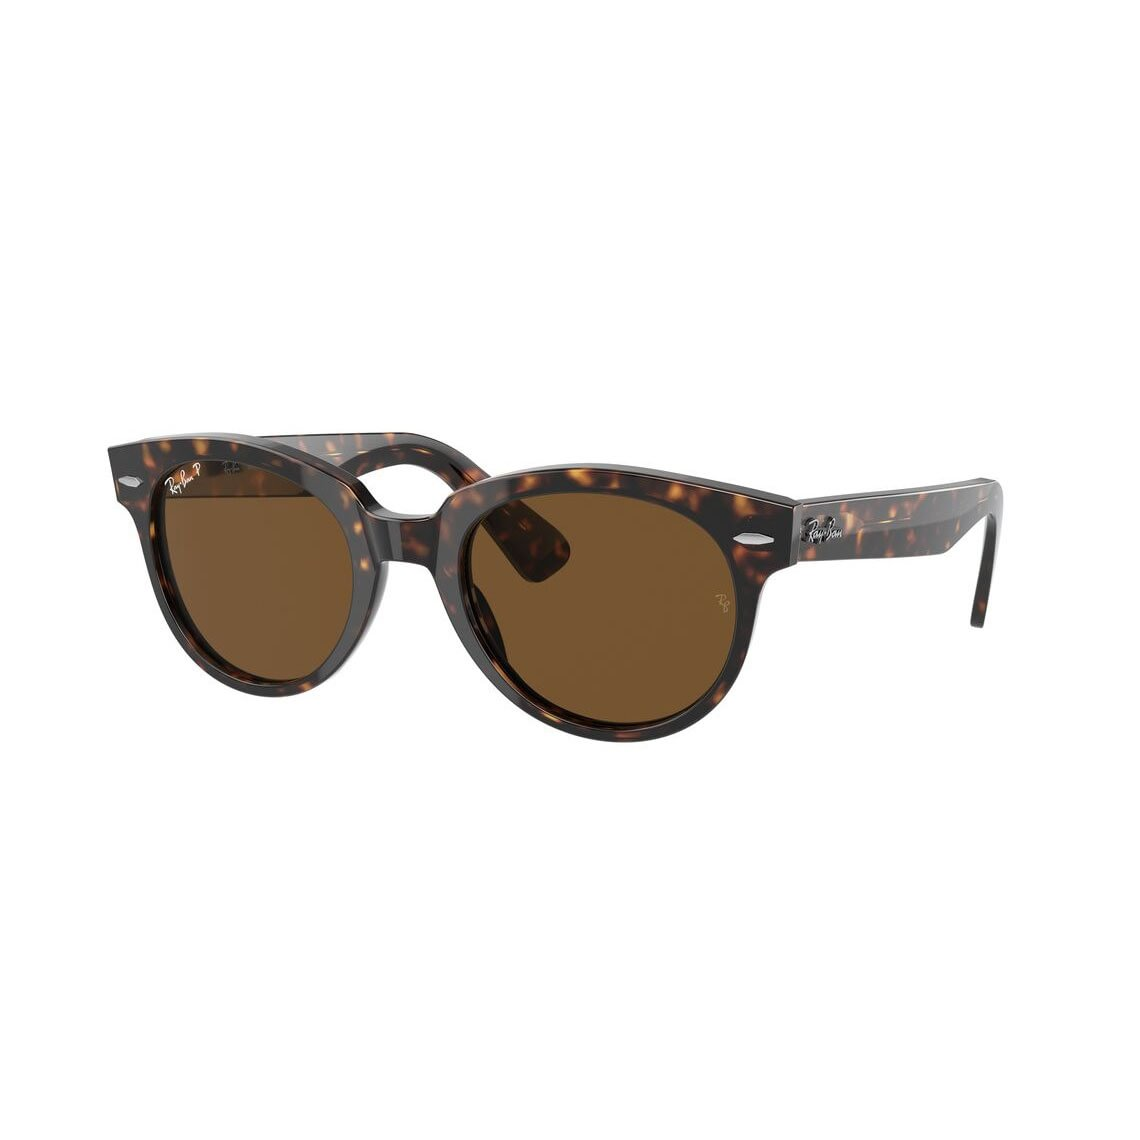 Ray-Ban Orion RB2199 902/57 5222